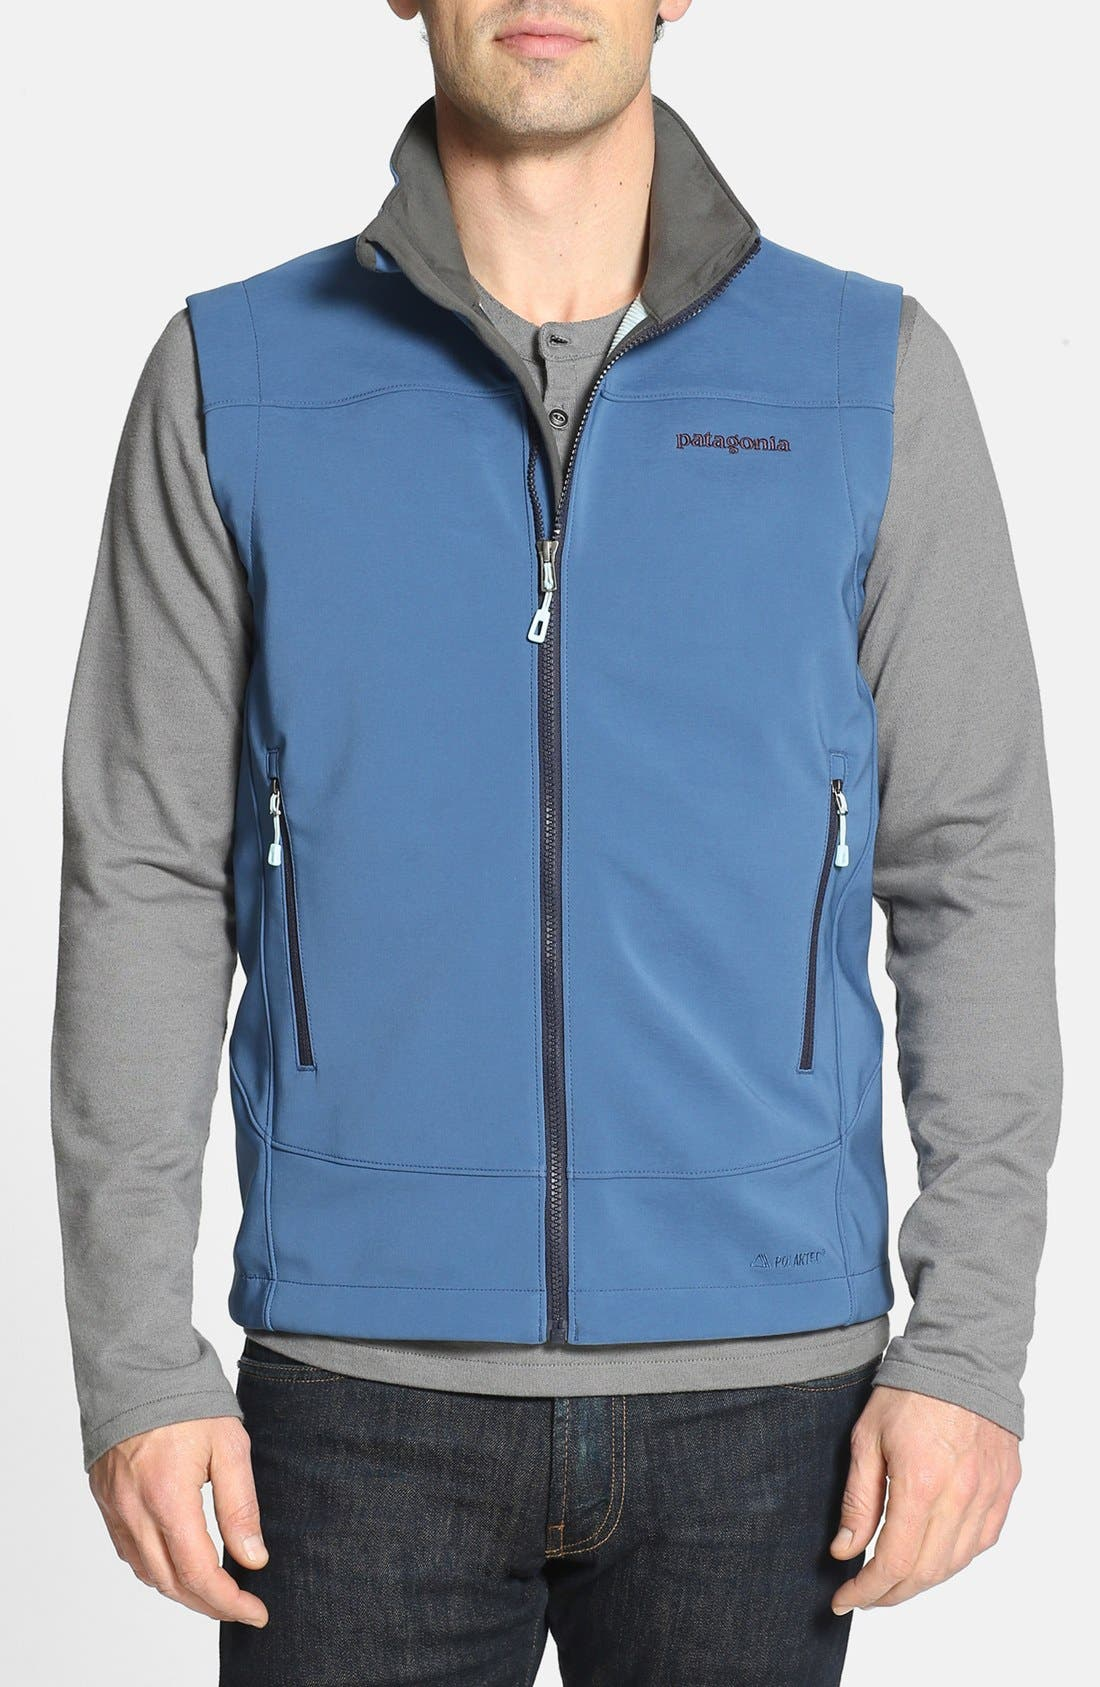 Alternate Image 1 Selected - Patagonia 'Adze' Soft Shell Vest